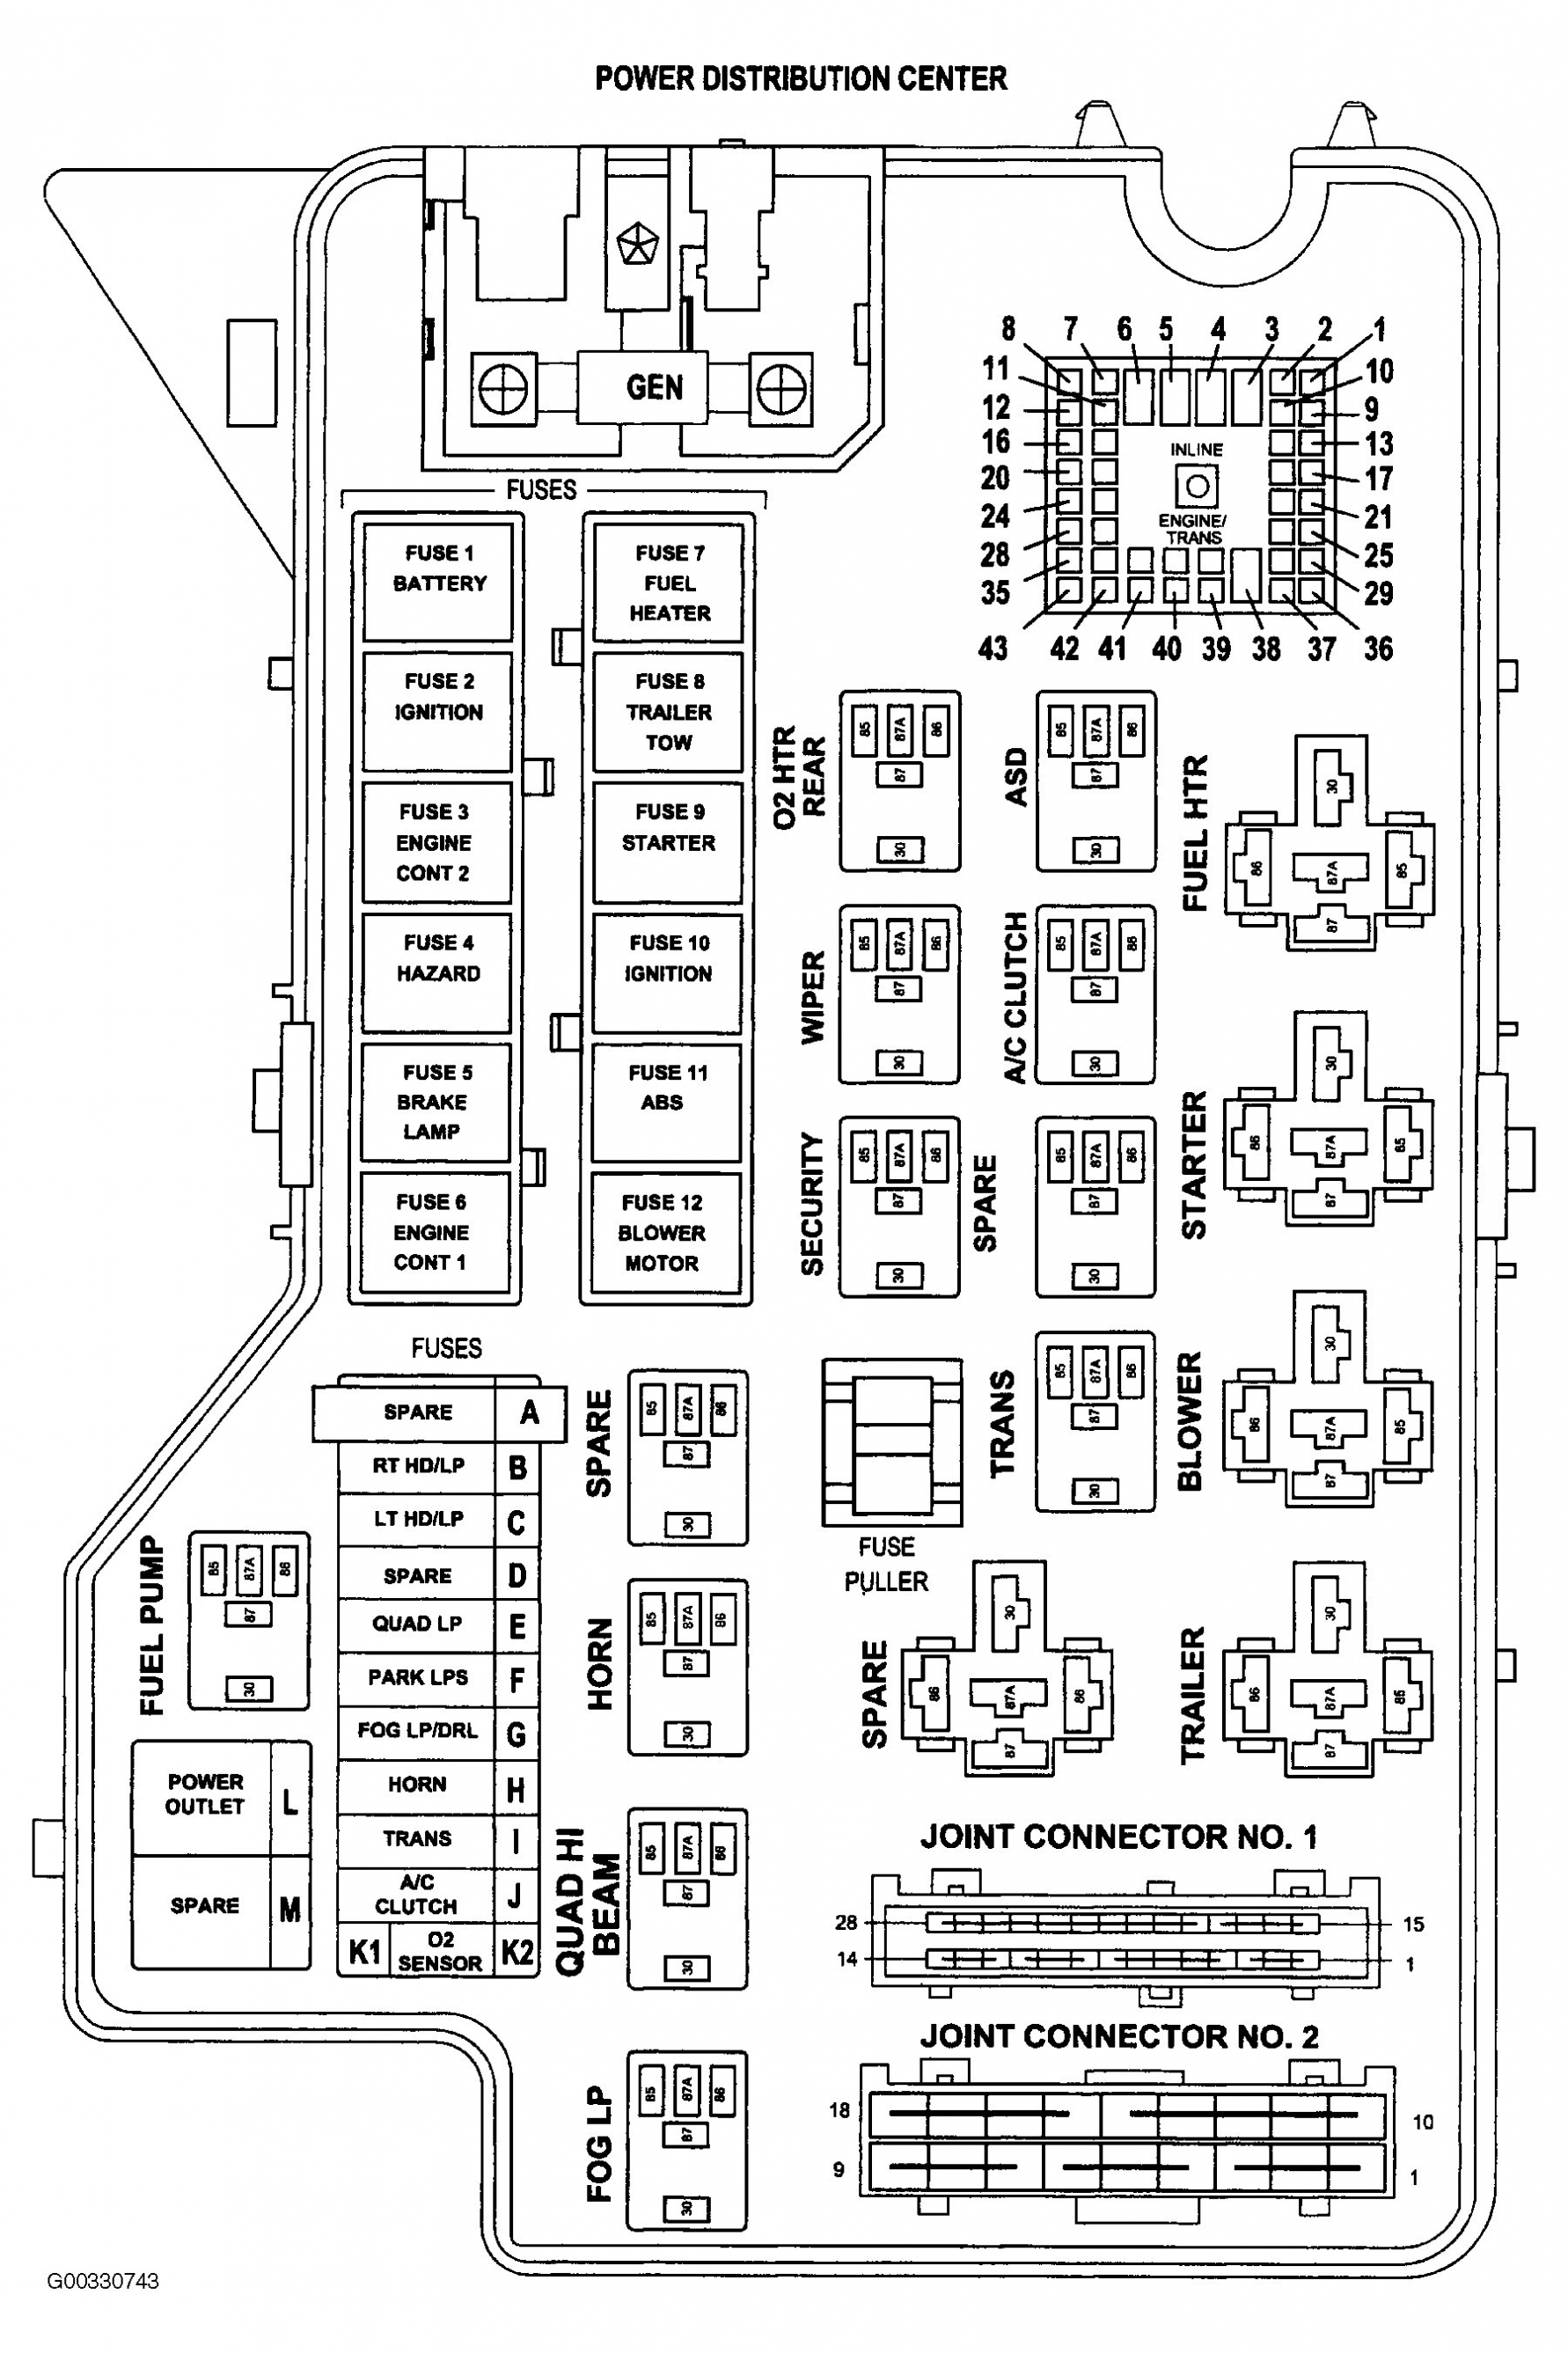 2001 Dodge Ram Fuse Box Diagram Wiring Diagram Grain Pair Grain Pair Zaafran It